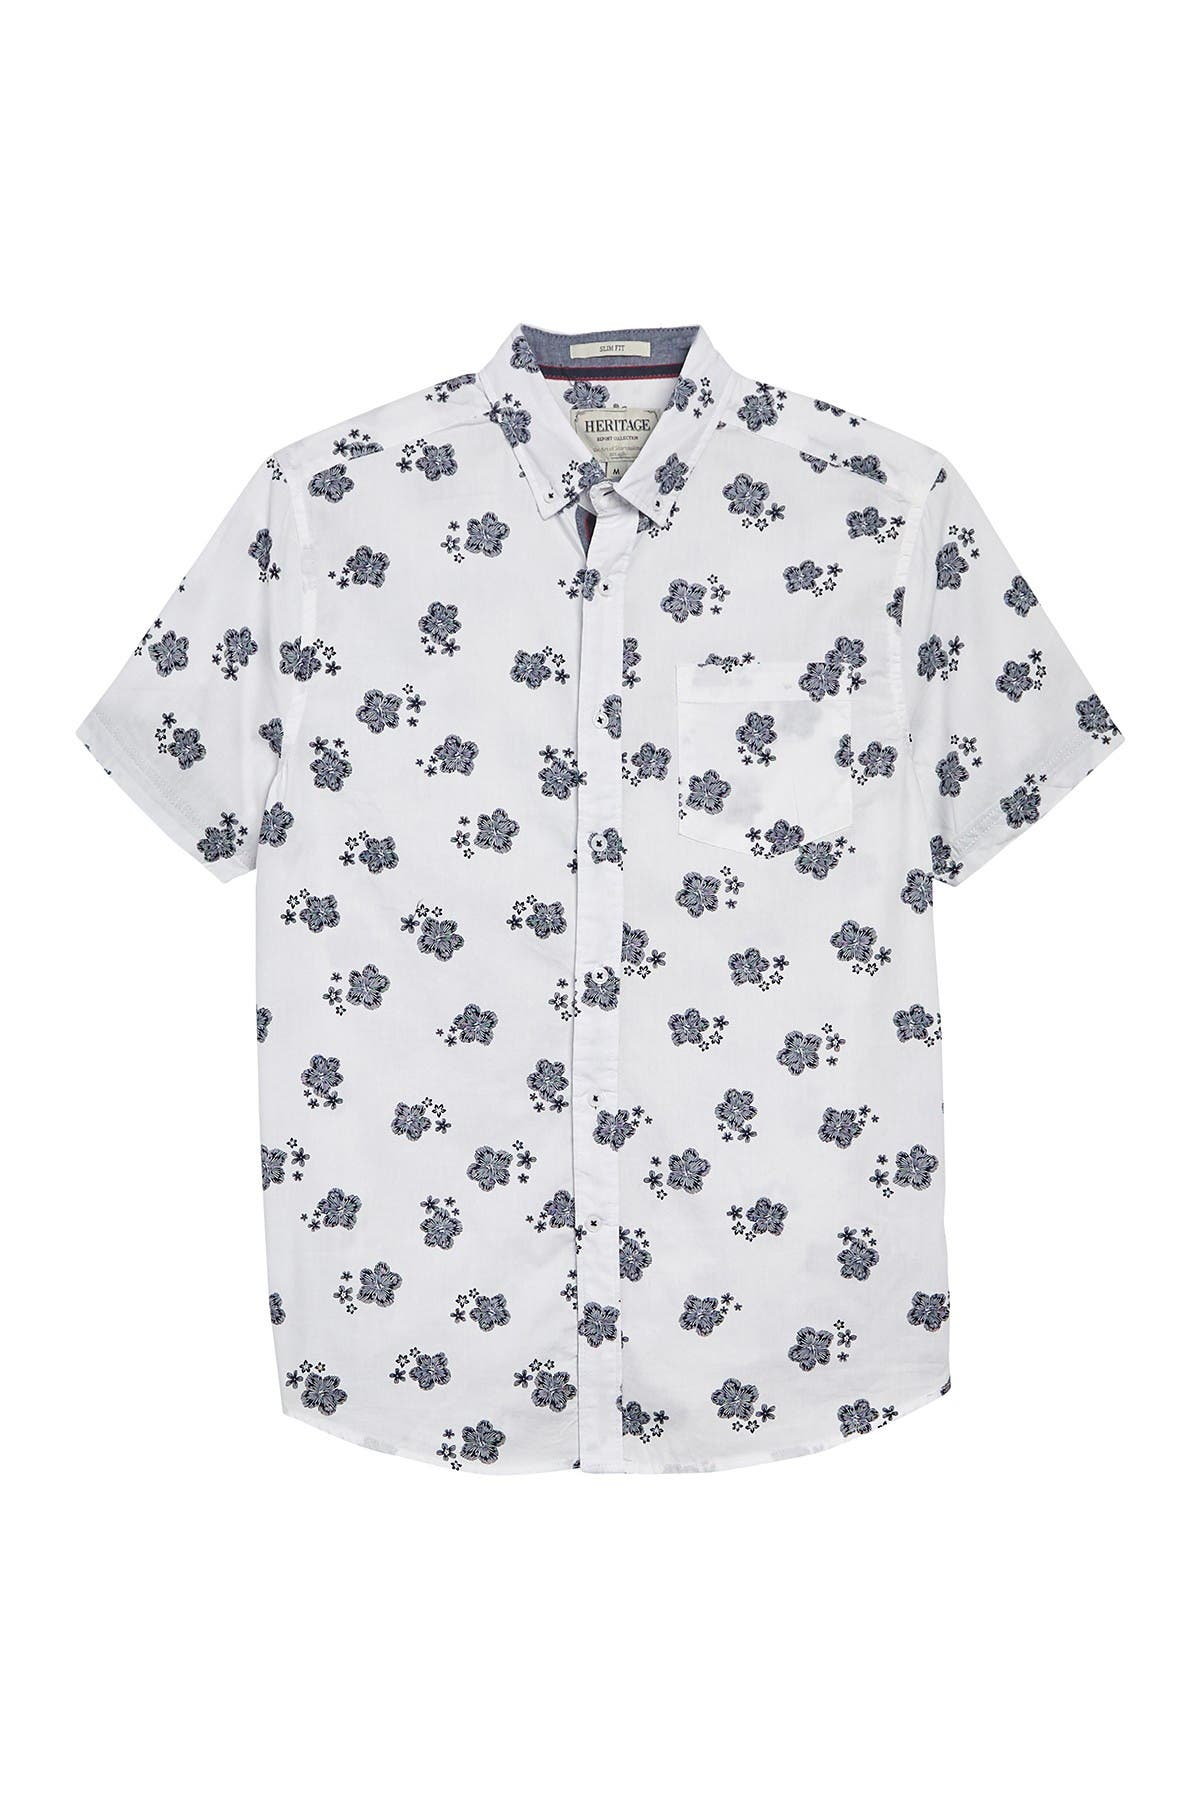 Image of Report Collection Floral Print Slim Fit Shirt